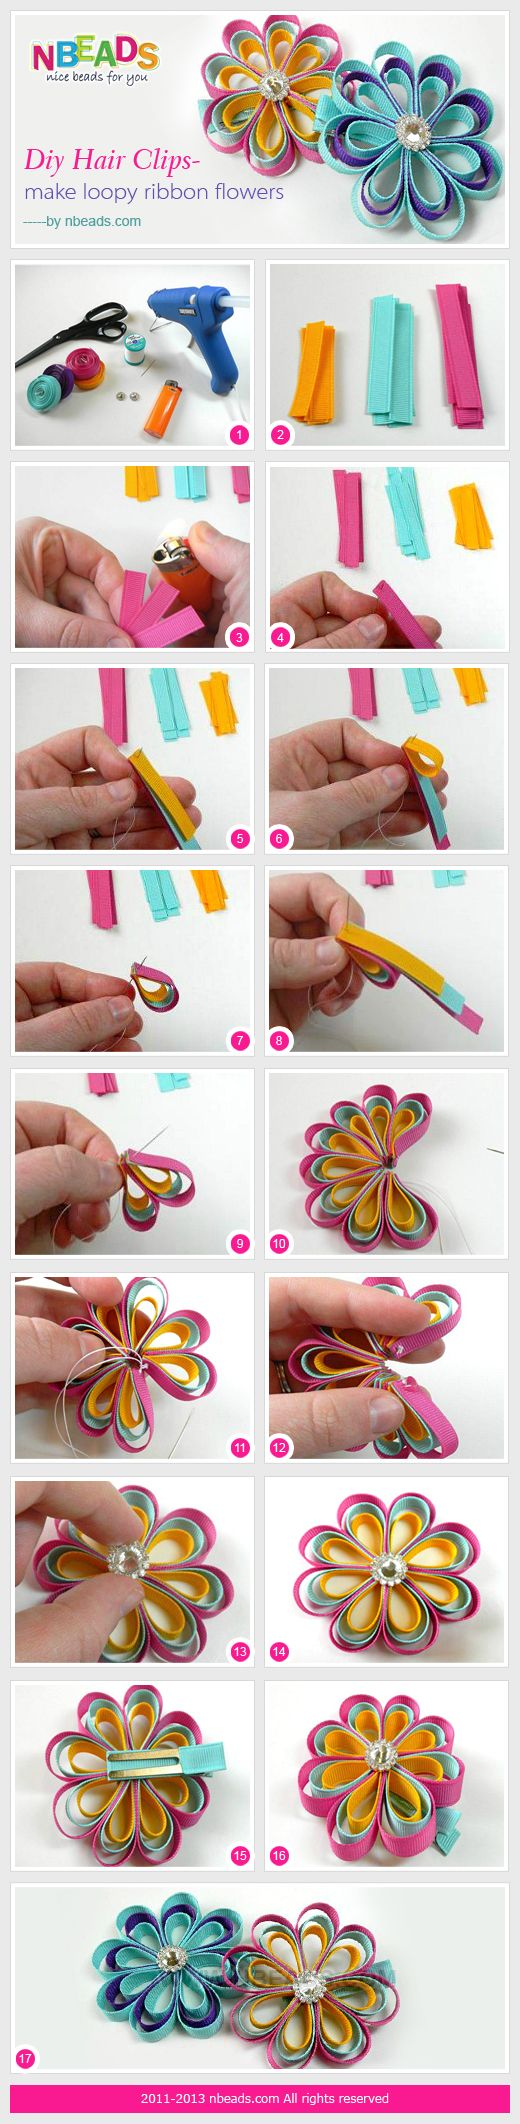 DIY Hair Clips - Make Loopy Ribbon Flowers diy crafts craft ideas easy crafts diy ideas diy crafts diy flowers easy diy craft decorations